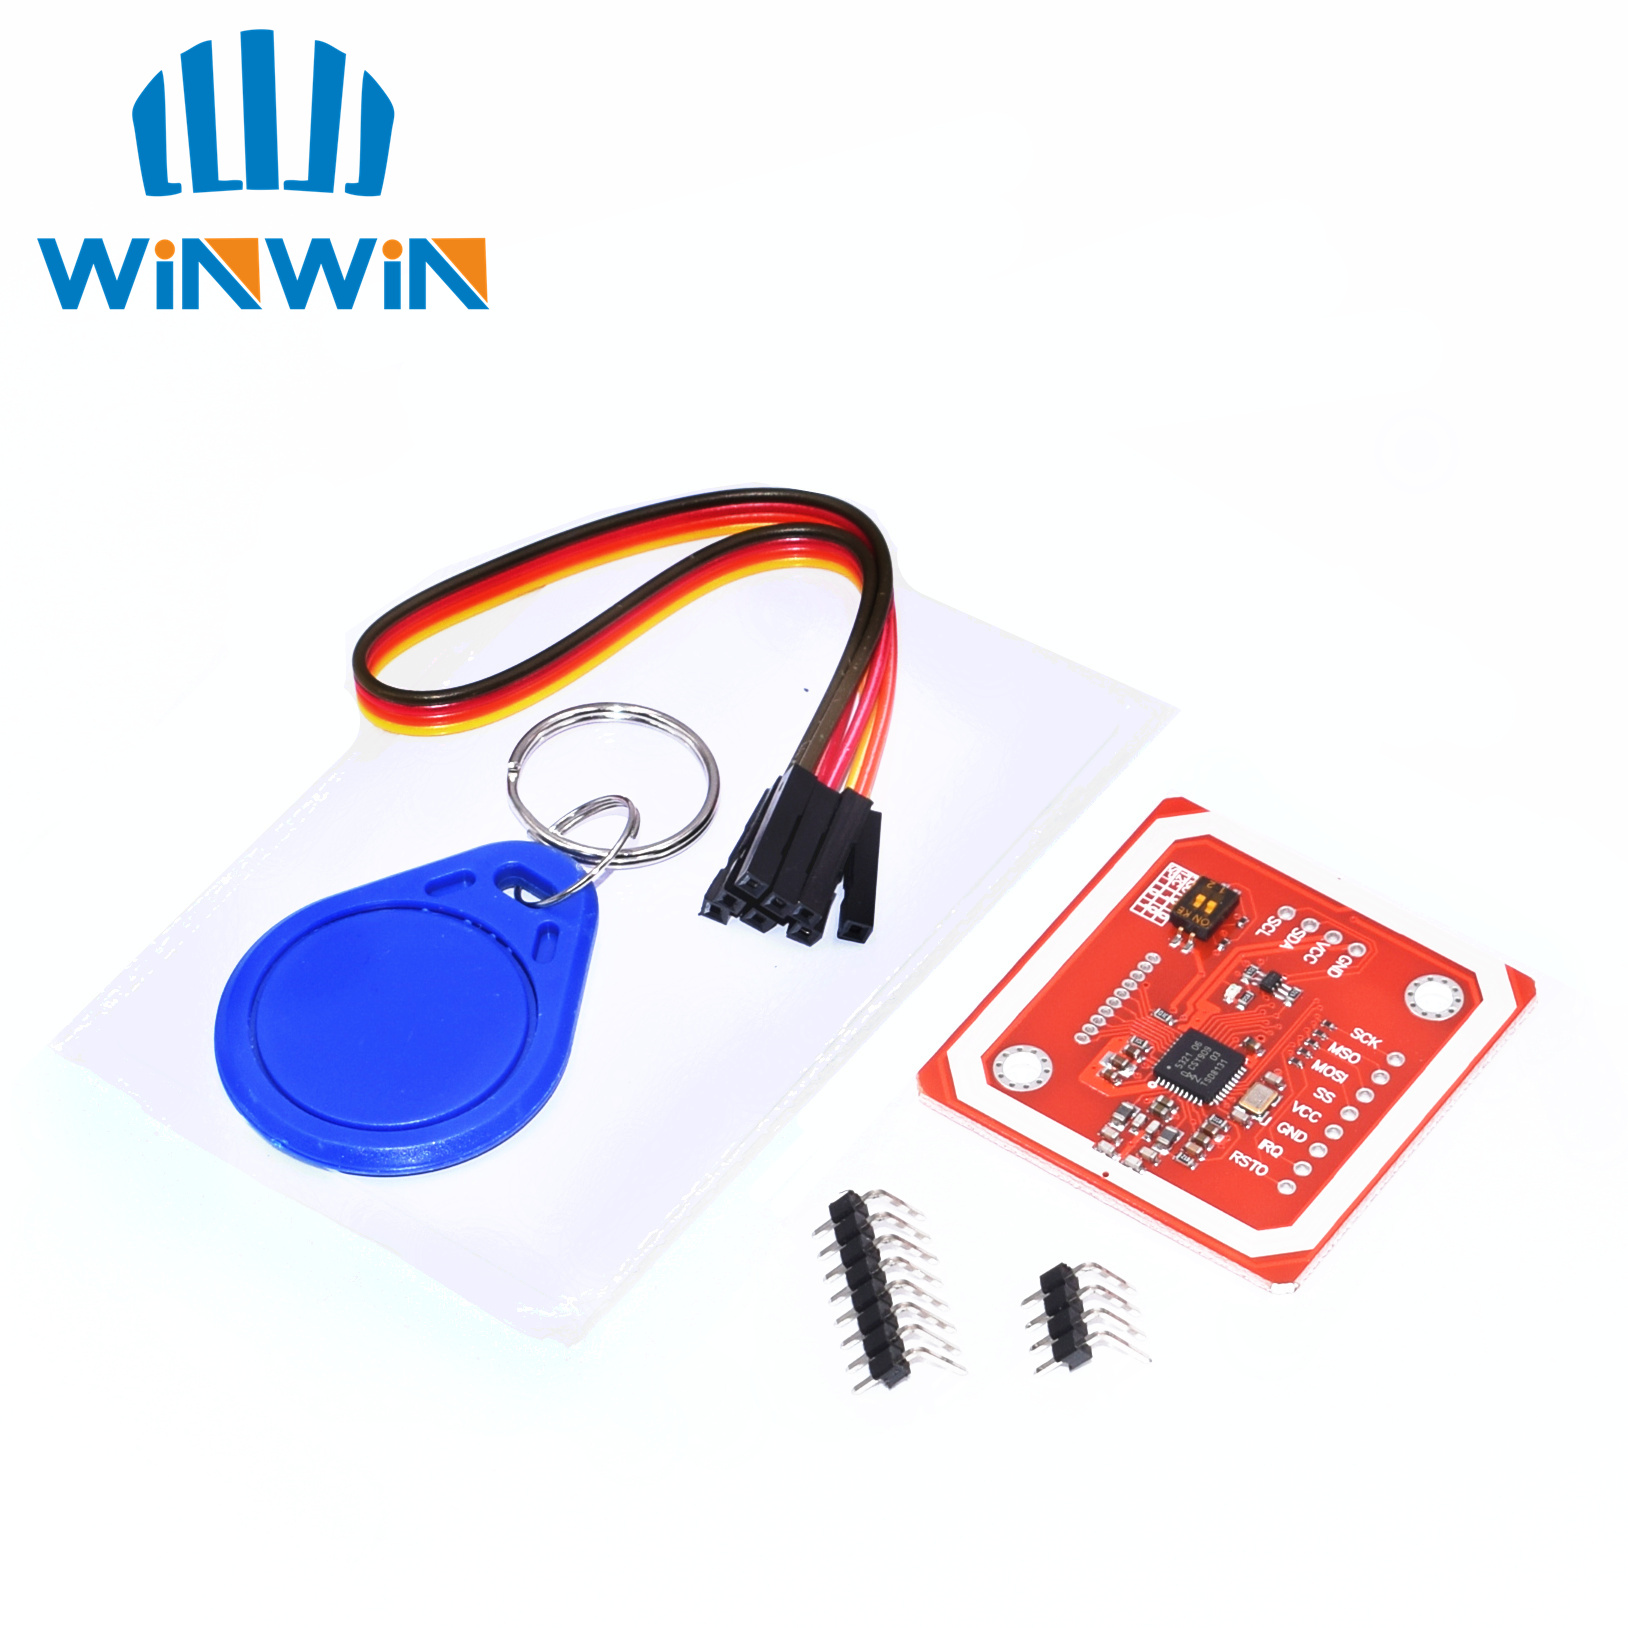 H42 Pn532 Nfc Rfid Module V3 With Android Phone Extension Of Cable Schematic Provide And Library In Integrated Circuits From Electronic Components